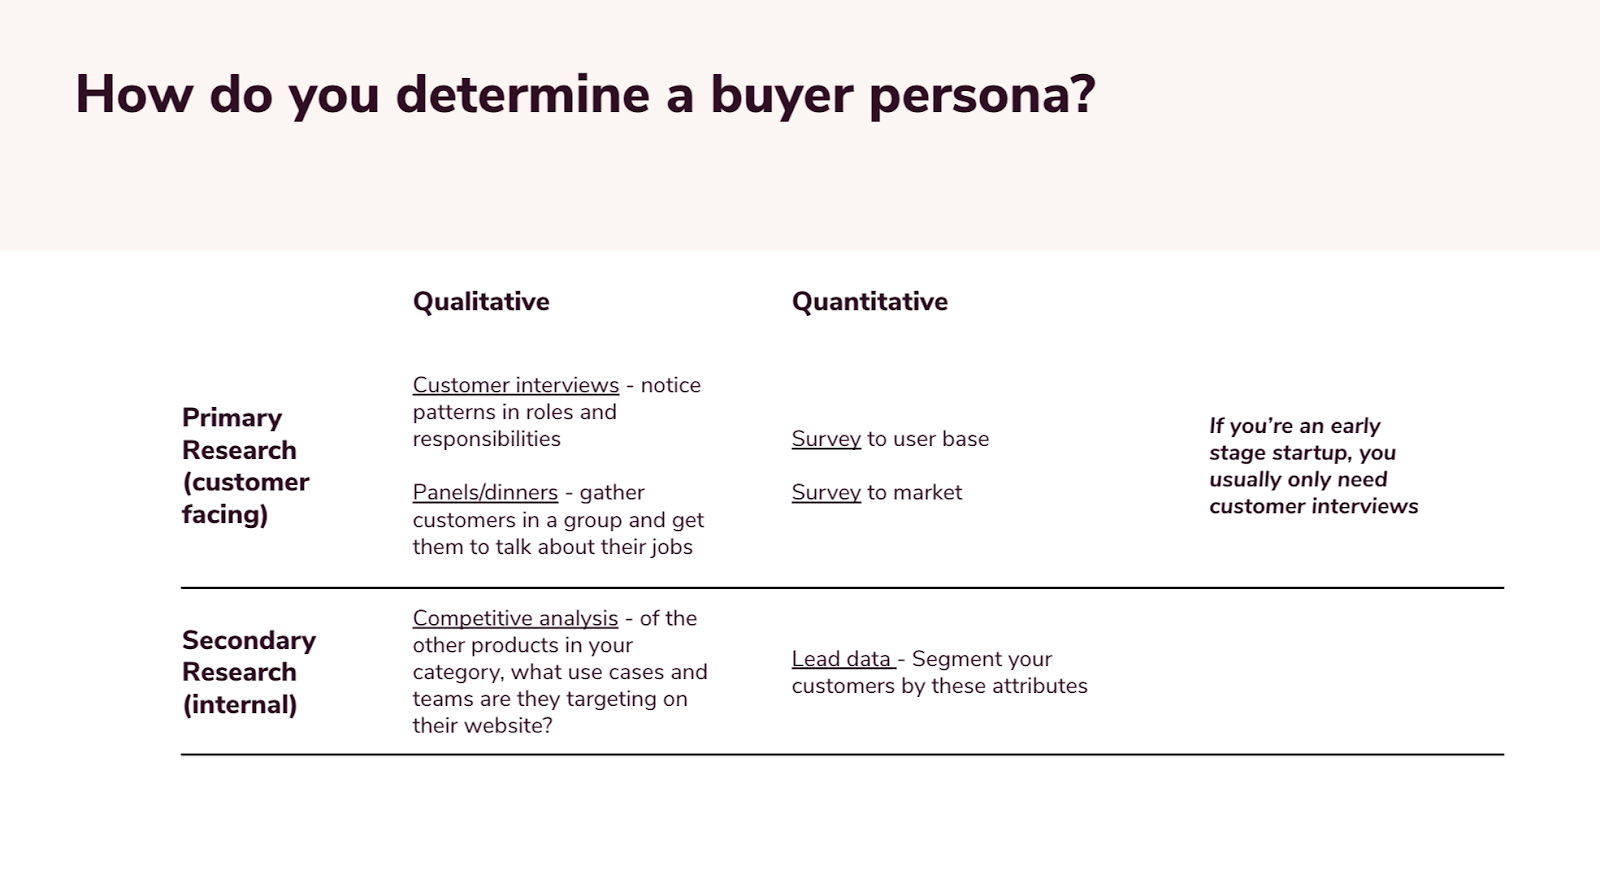 Go-to-market - researching buyer persona